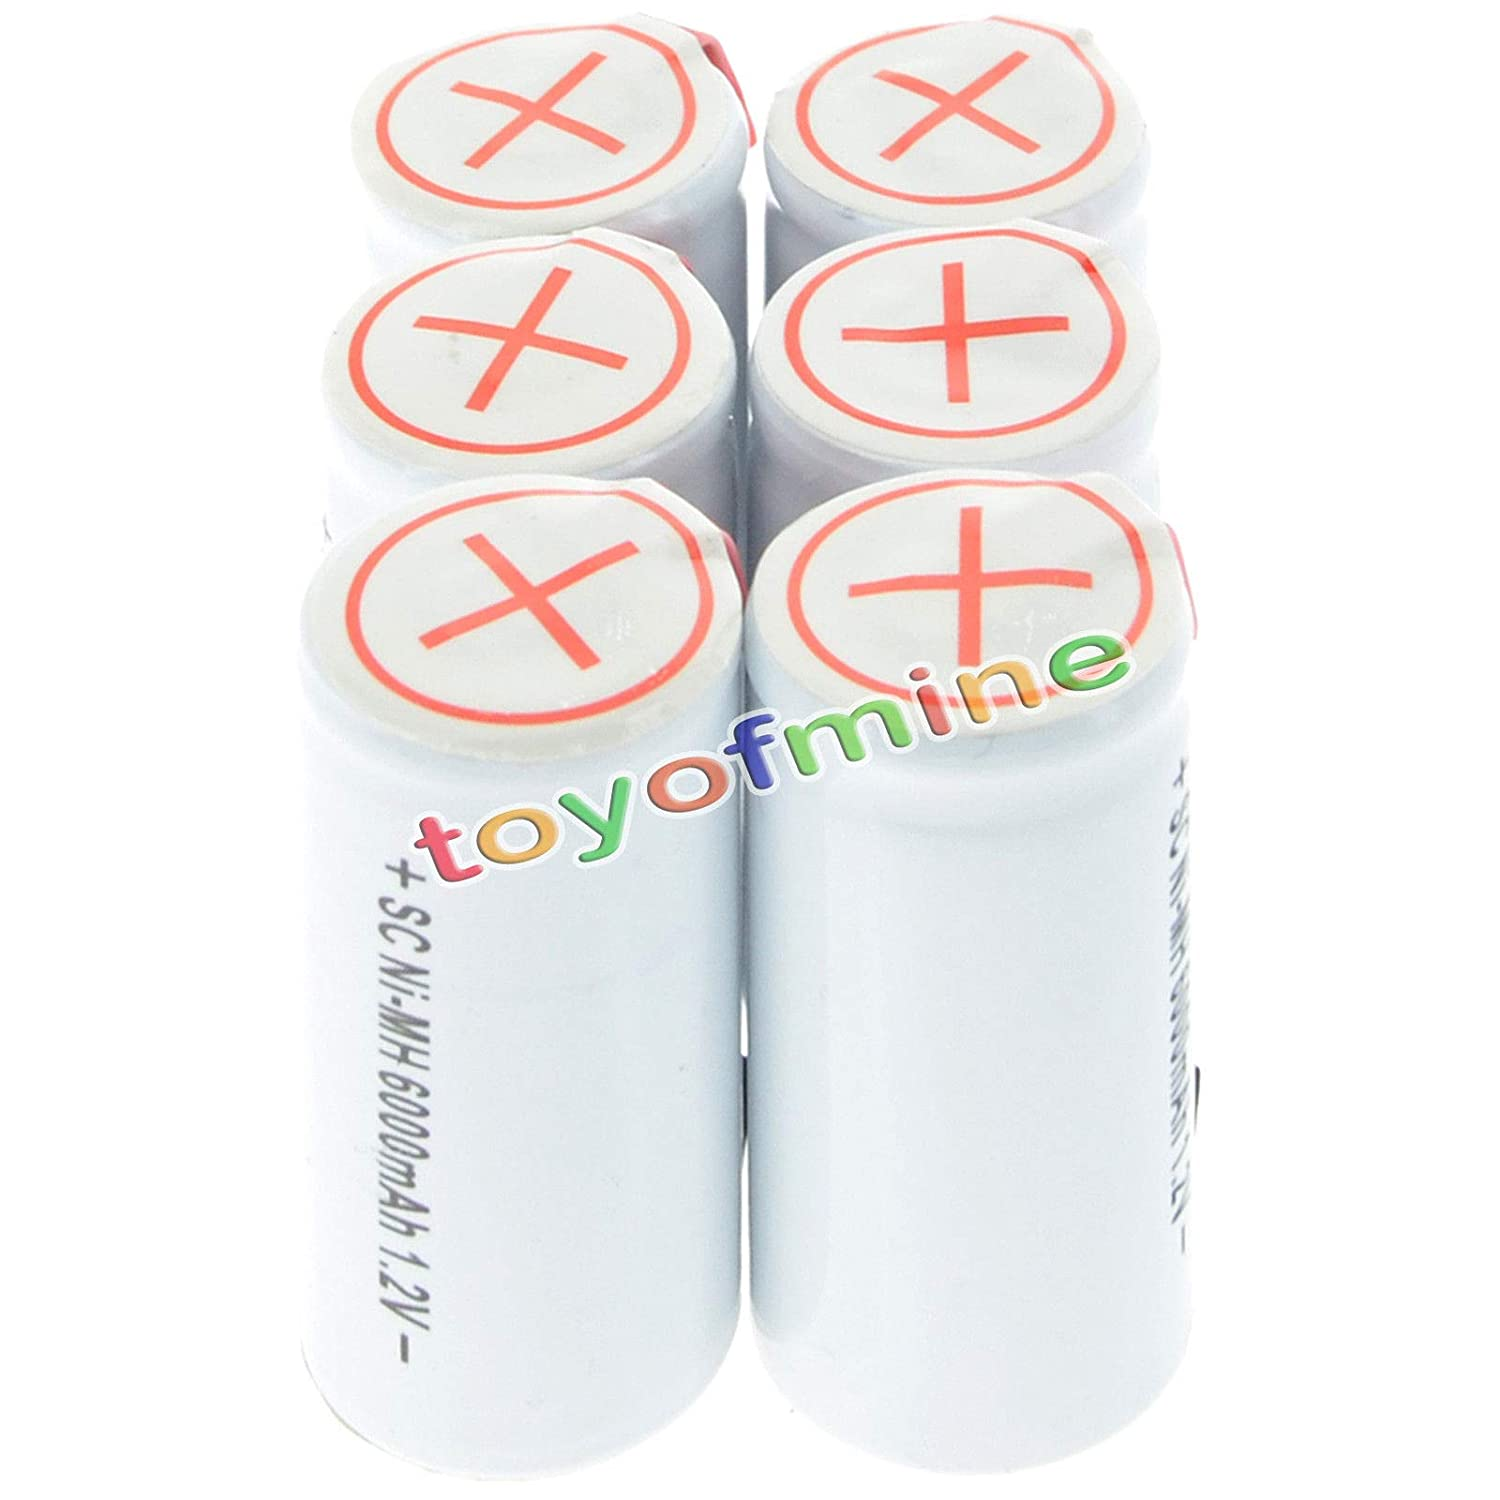 Powerton Six NiMh 4//5 SubC Sub C 1.2V 1800mAh Rechargeable Batteries with Tabs 6